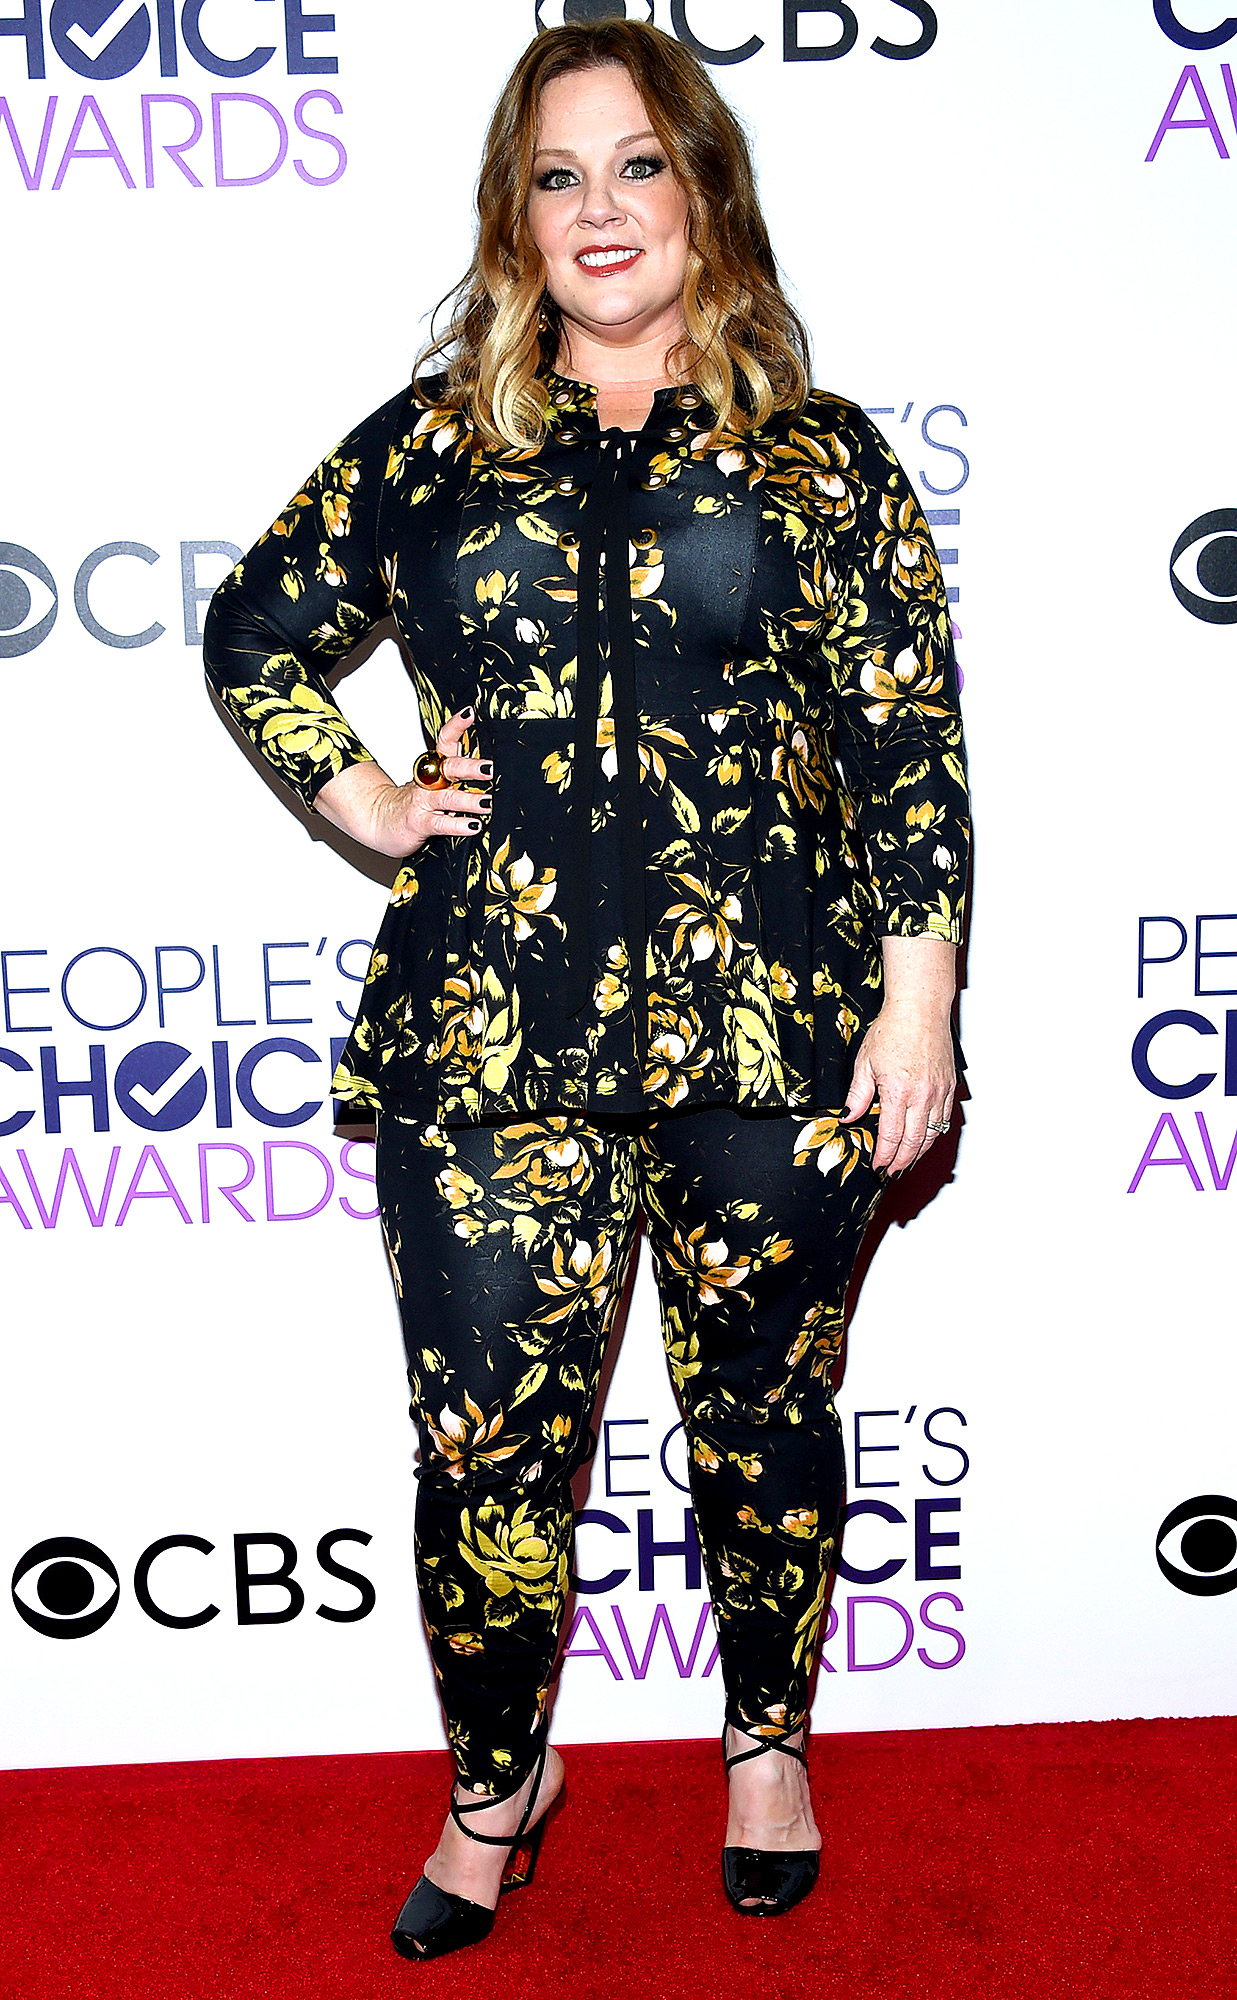 Celebrities arrive at the People's Choice Awards 2017